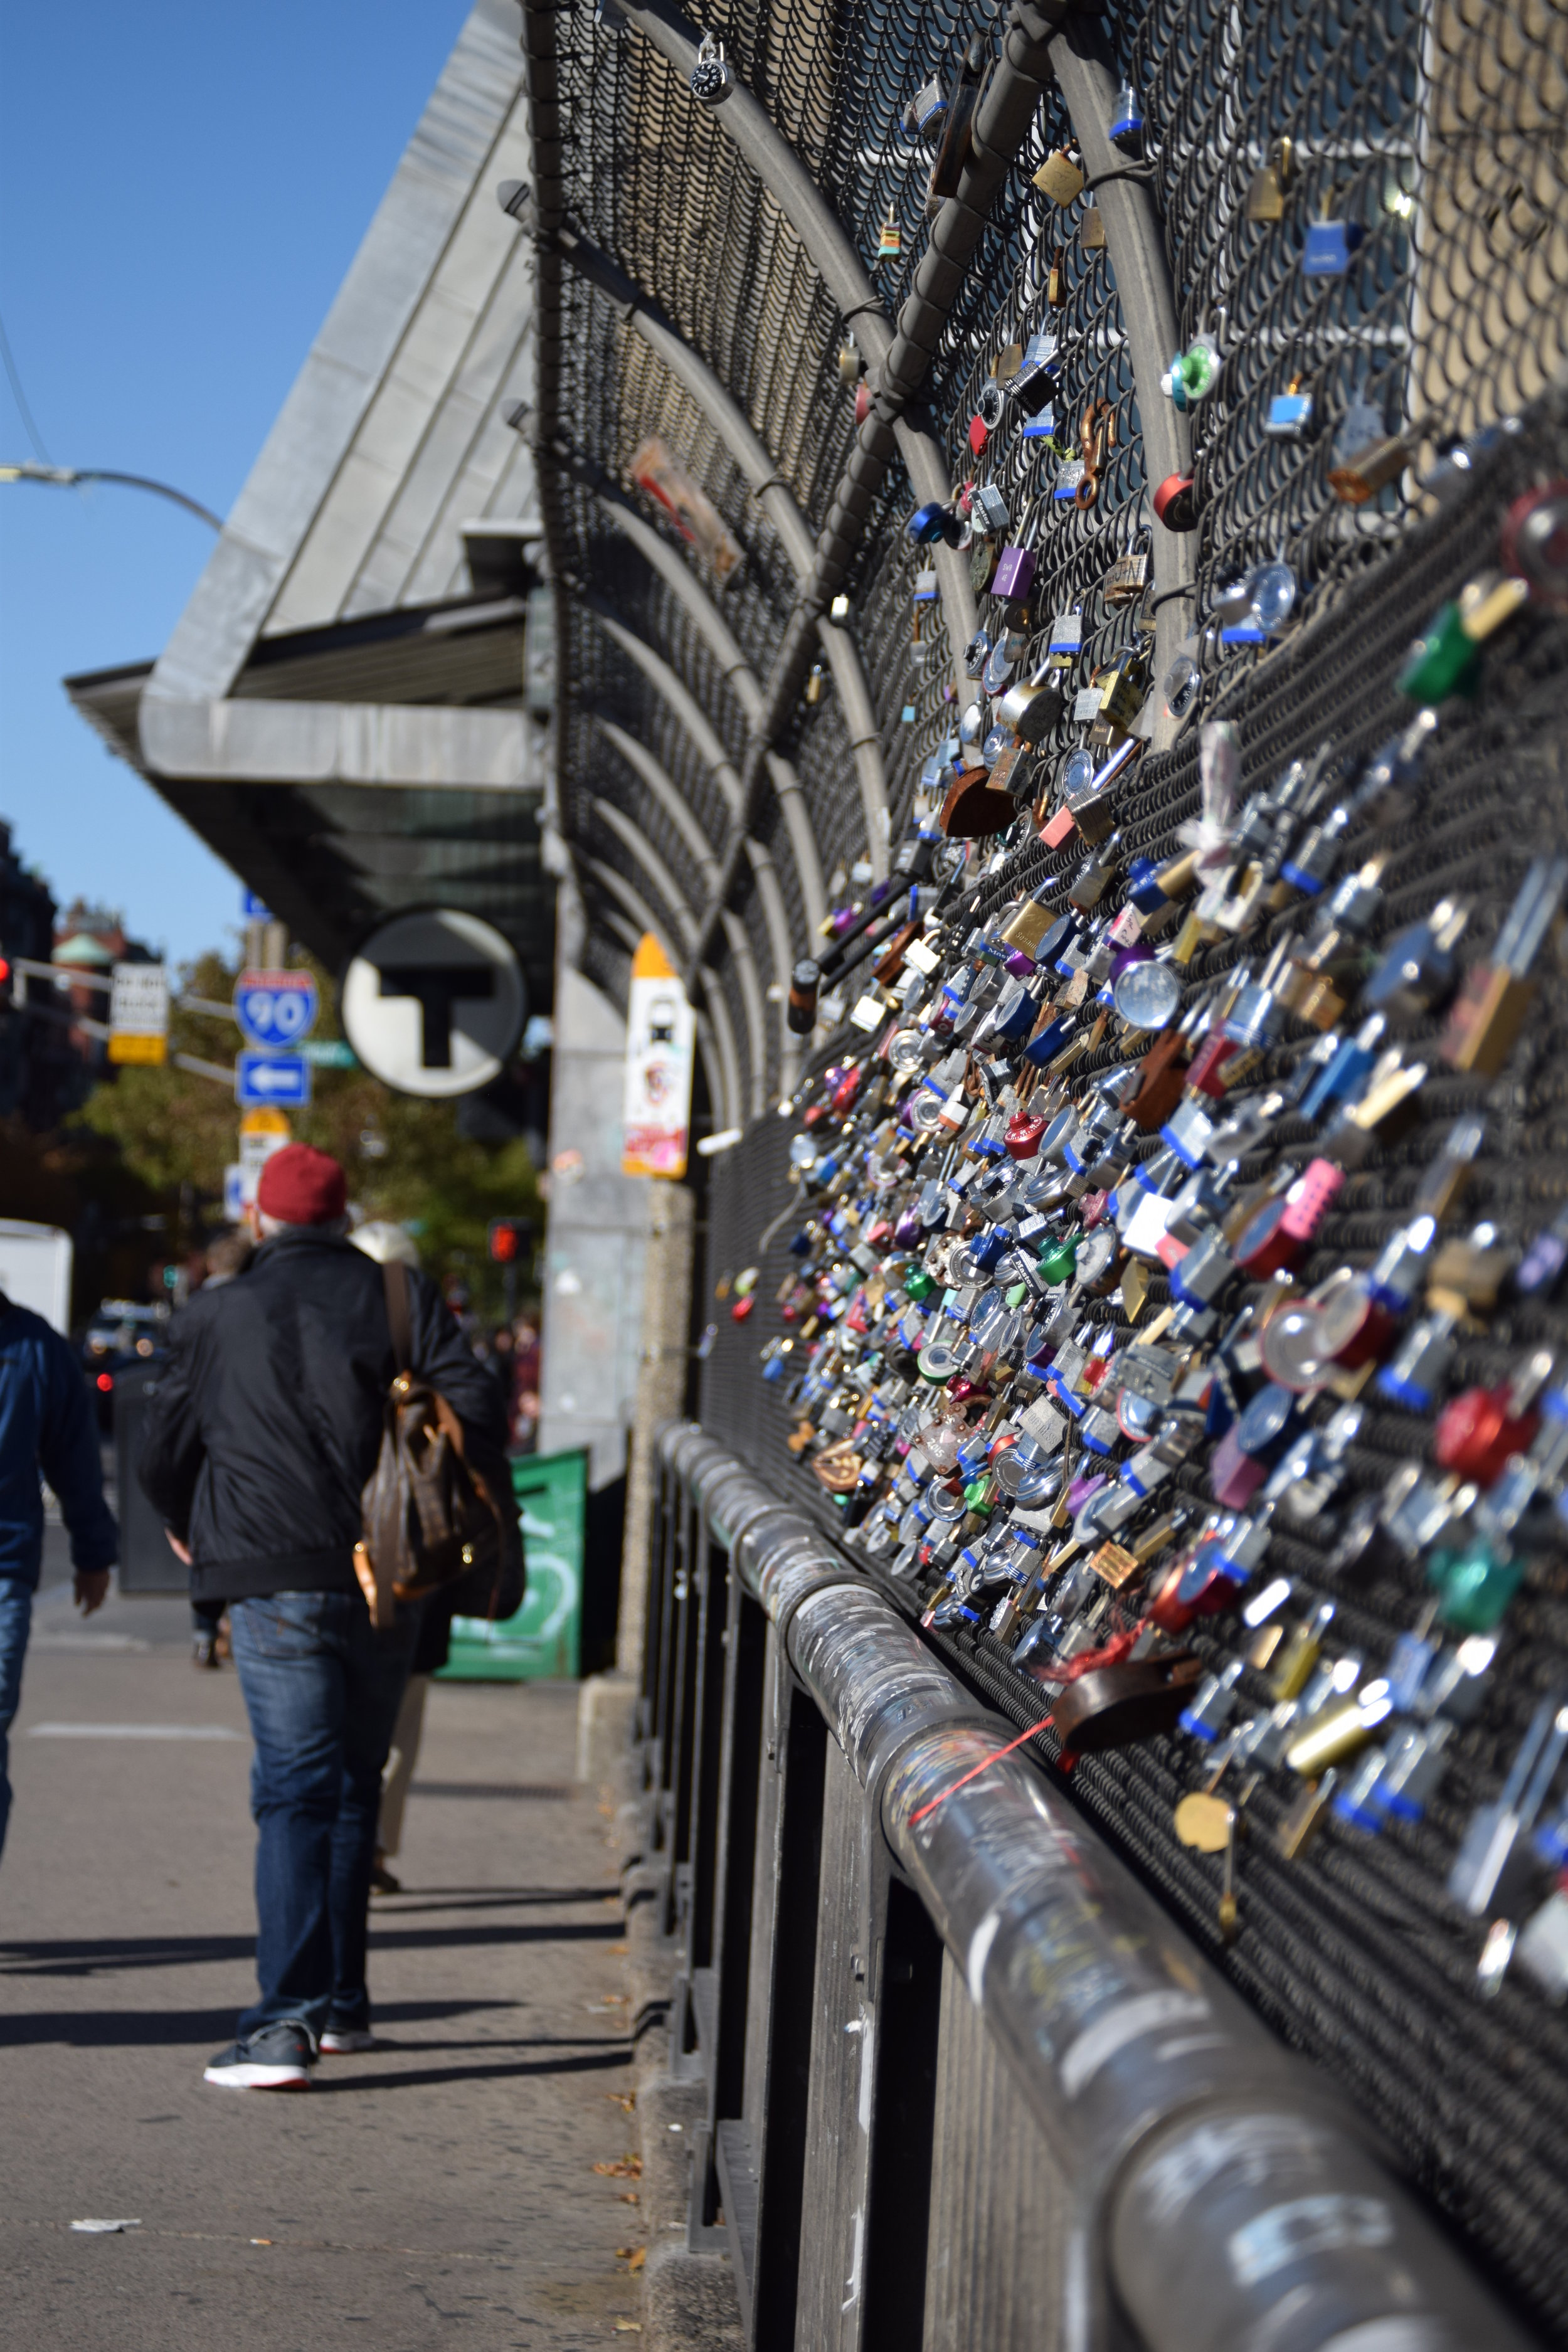 Padlocks with sentimental messages,known as love locks, are attached to the bridge over I-90 on Massachusetts Avenue in Boston, MA.